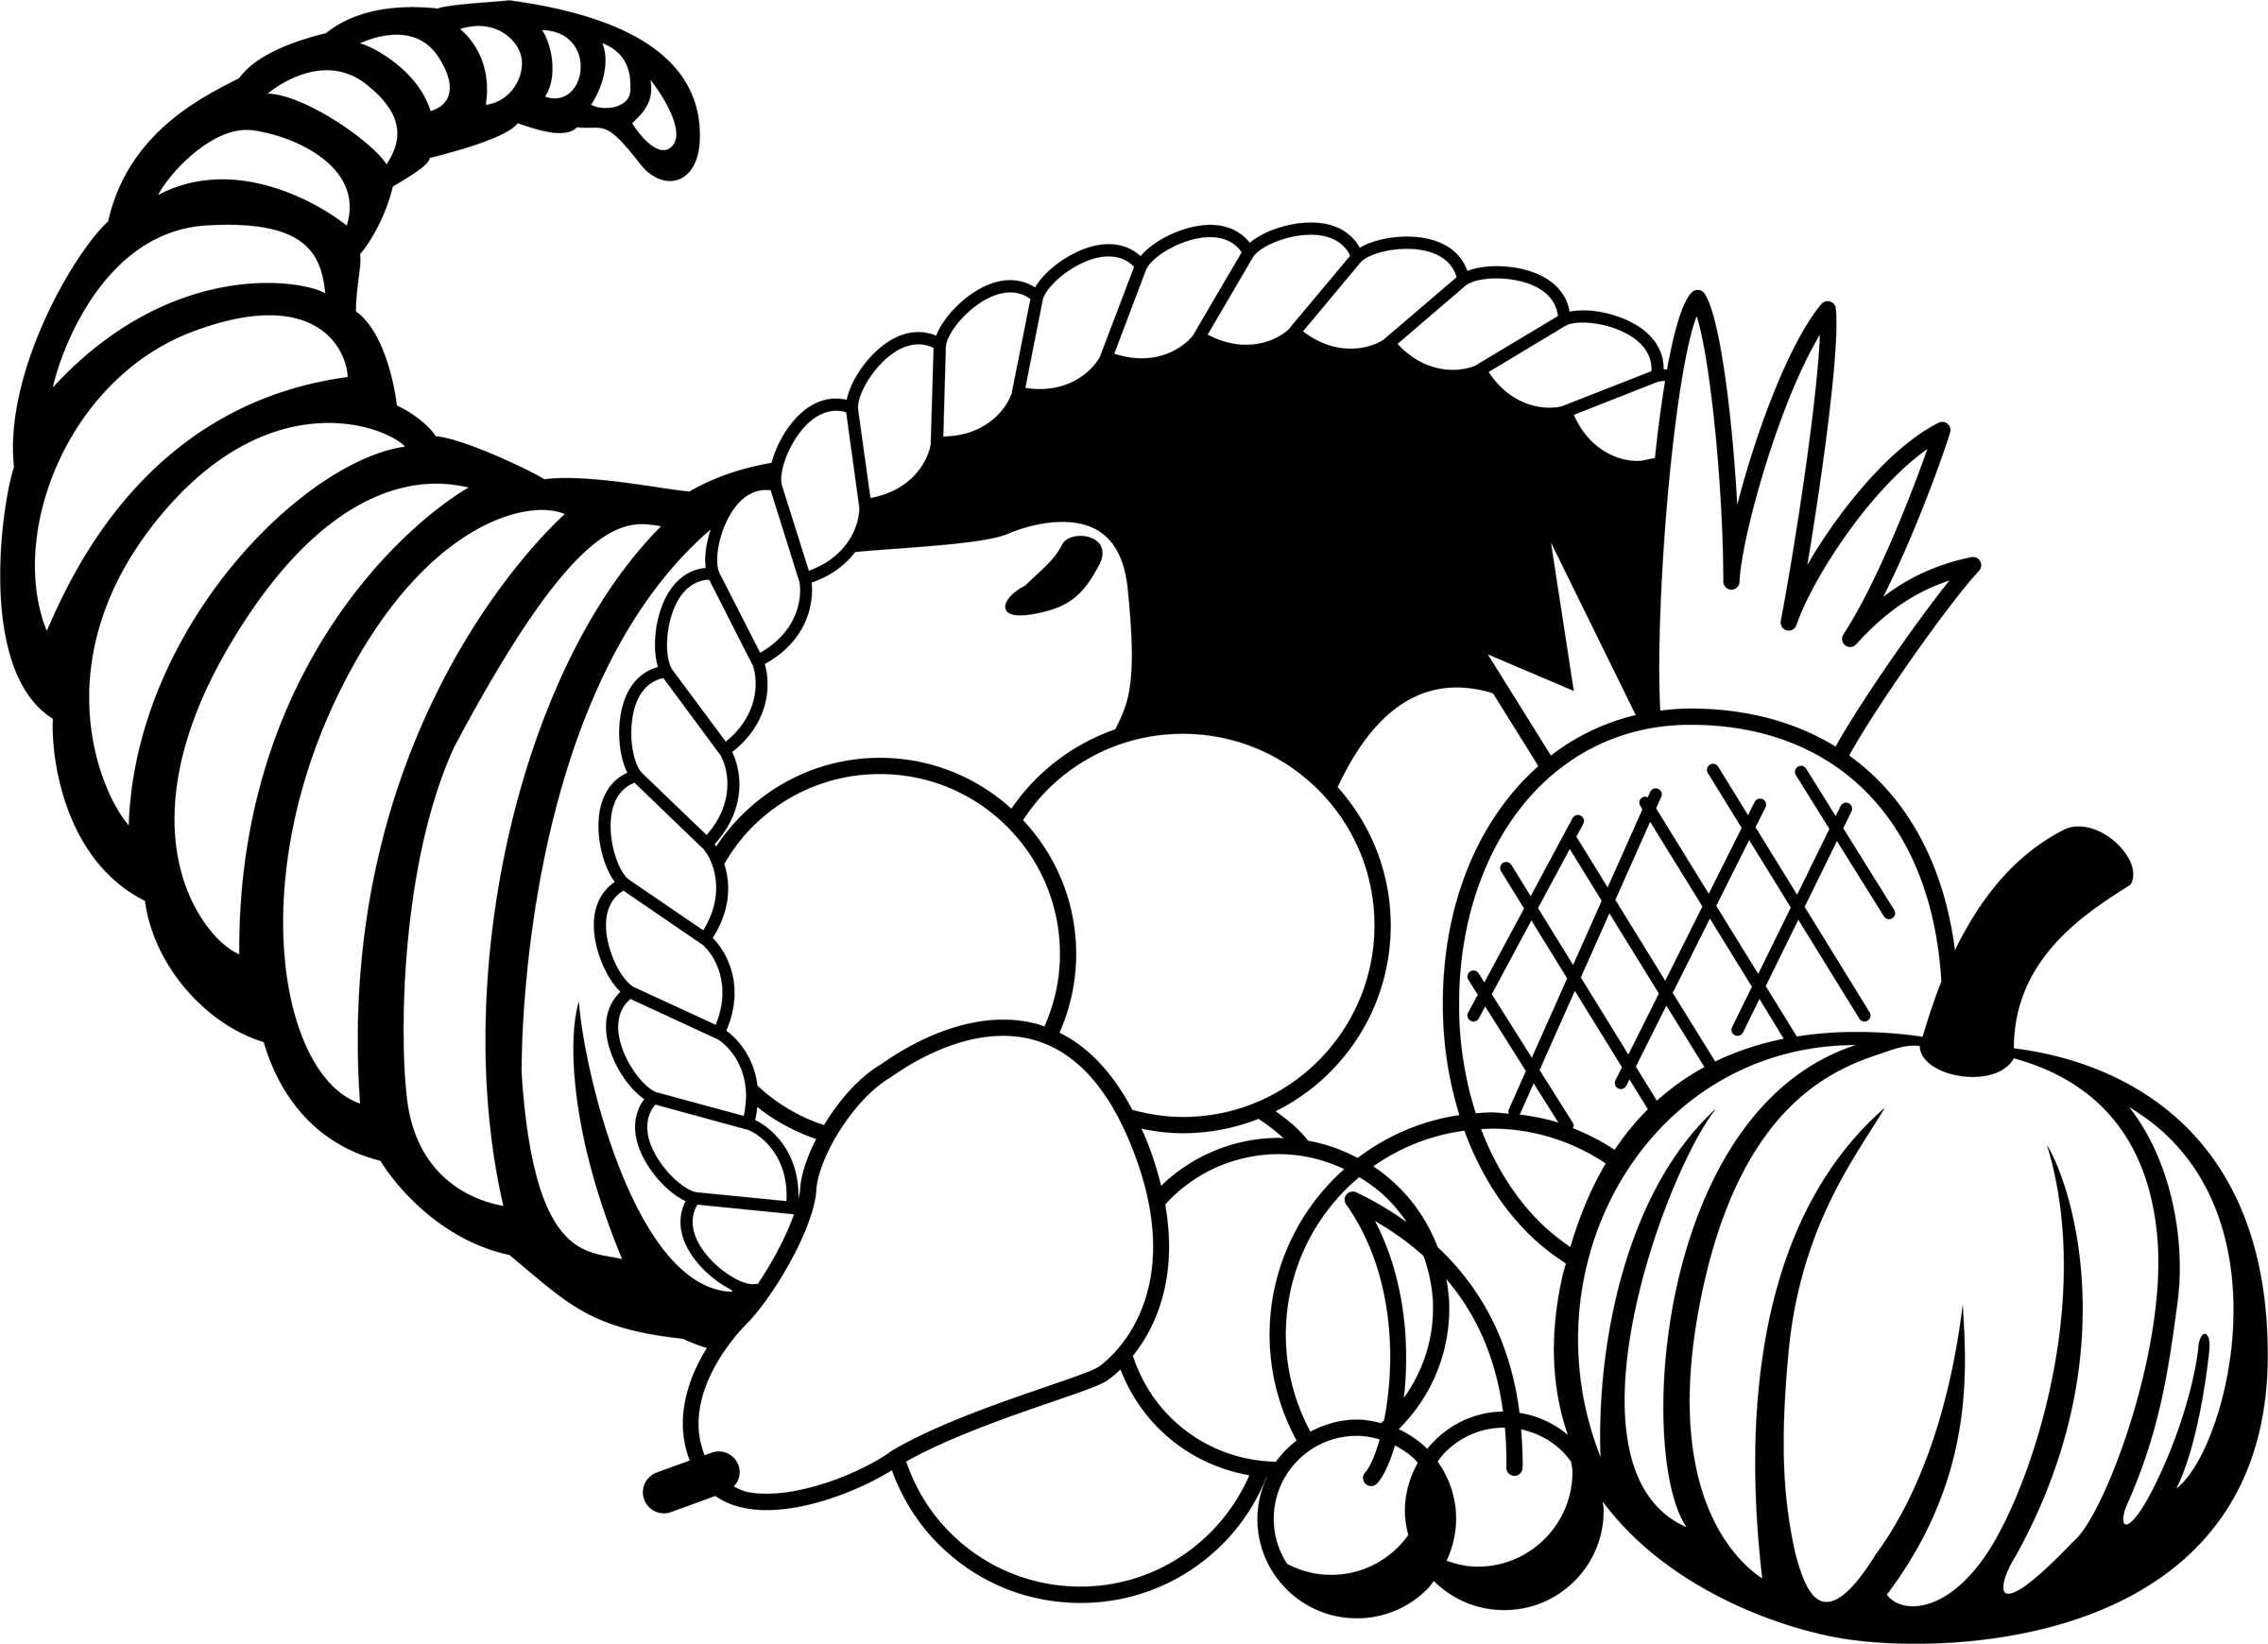 Horn of plenty clipart black and white graphic Free Thanksgiving Cornucopia Pictures, Download Free Clip Art, Free ... graphic